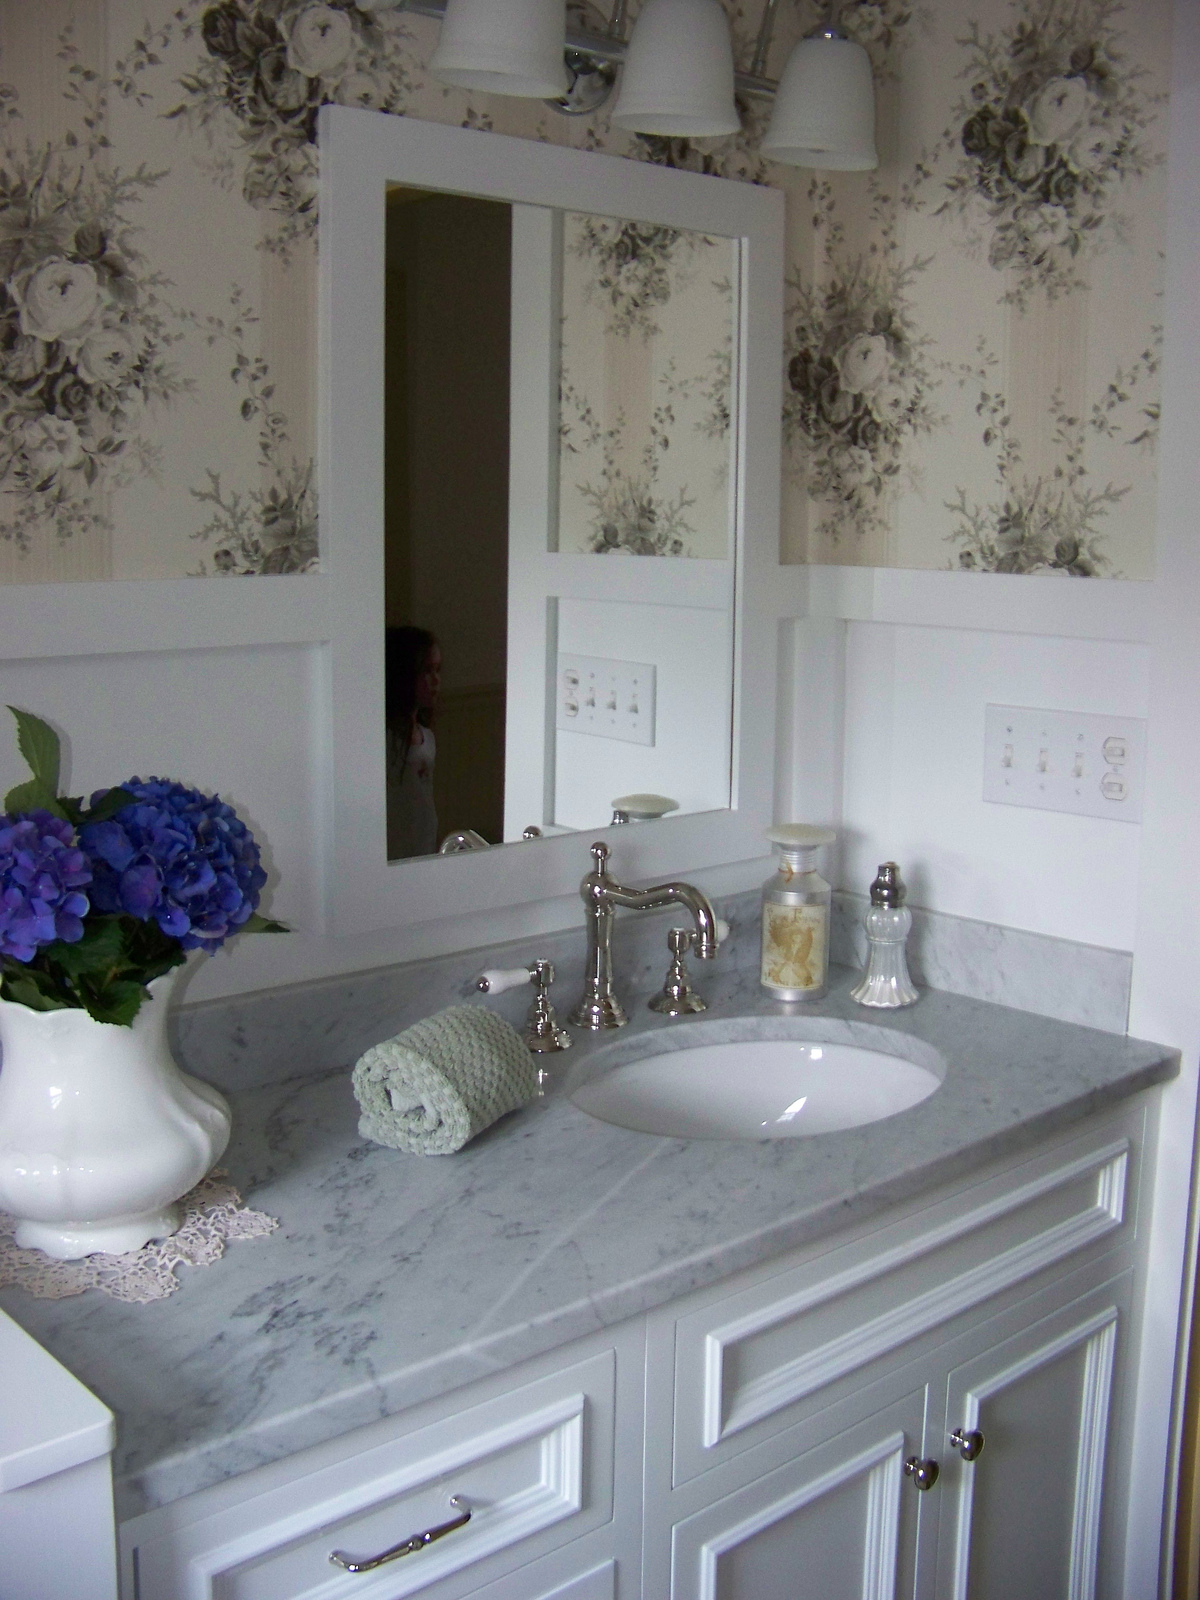 Bathroom Remodeling Ri Mesmerizing Bathroom Remodel Ri  Kmd Custom Woodworking  401 6398140 2017